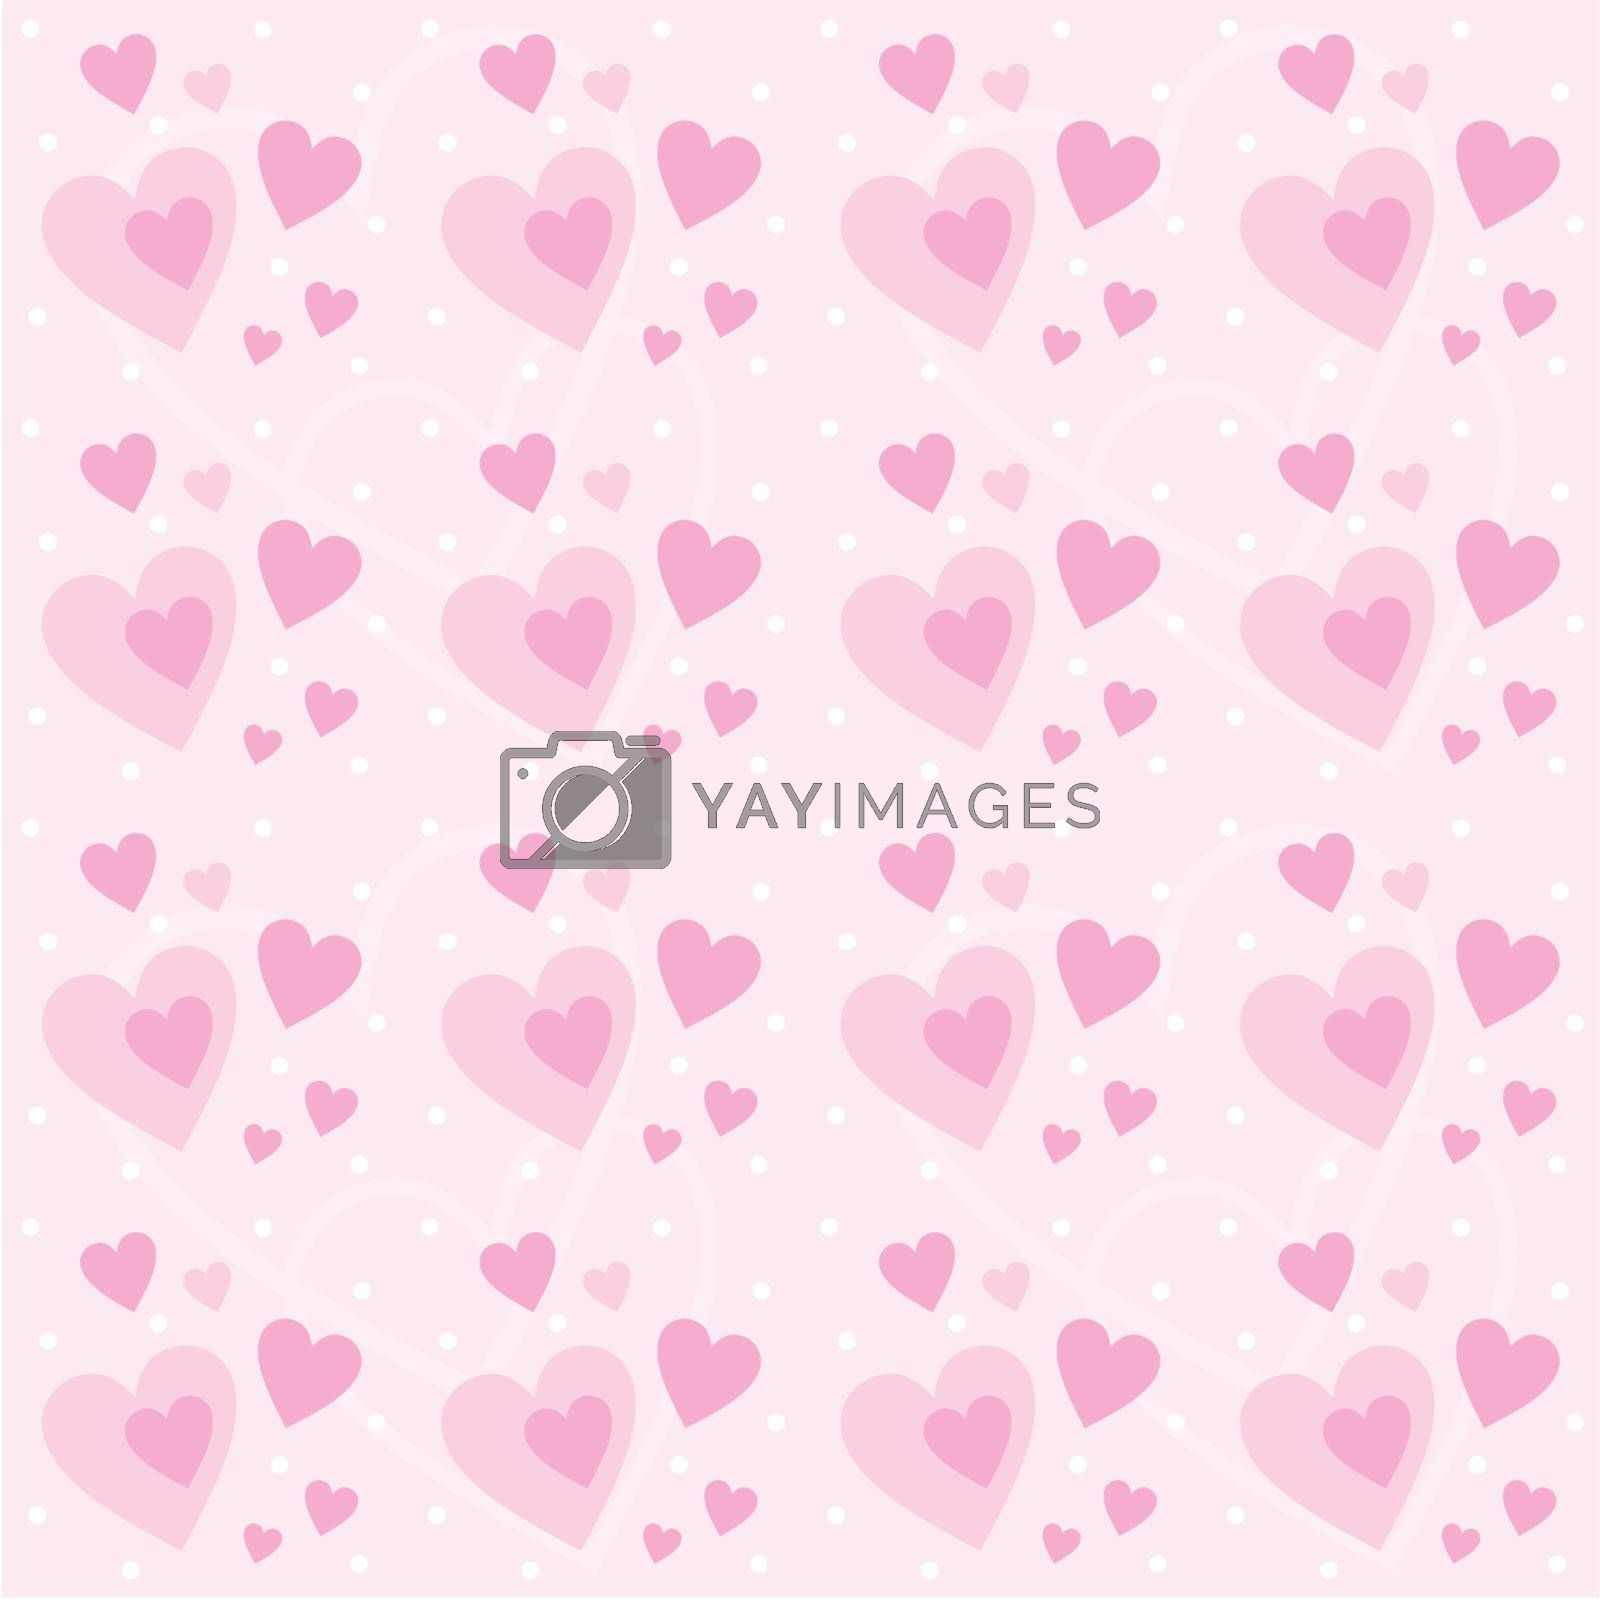 Image of Seamless pattern with hearts for Valentine's Day holiday.